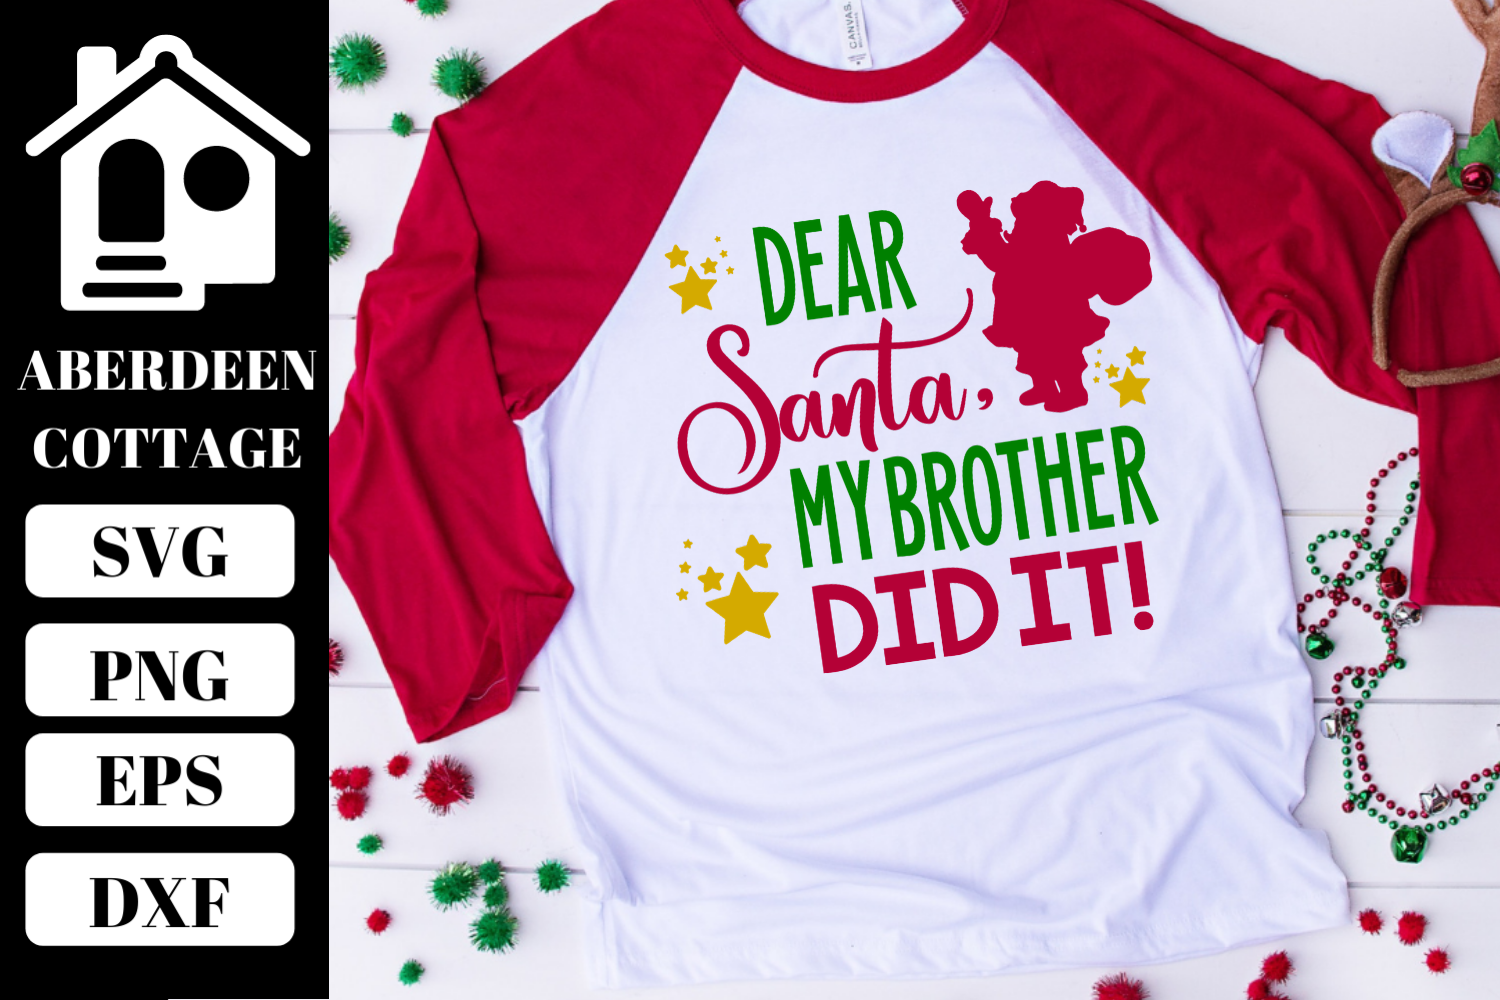 Dear Santa, My Brother Did It SVG   PNG   EPS   DXF example image 1